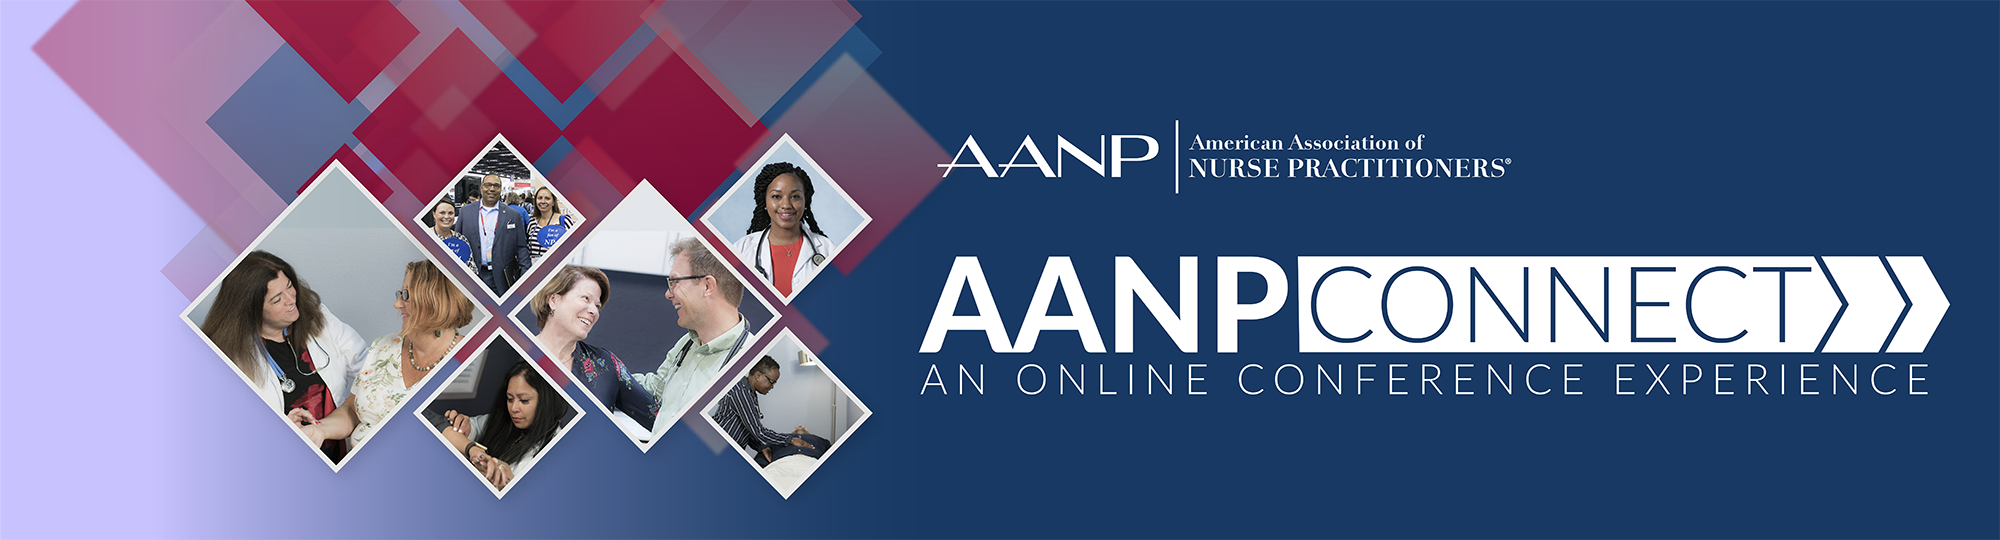 A collage of images showing NPs meeting with patients and attending conference against a red and blue background and the AANPconnect logo